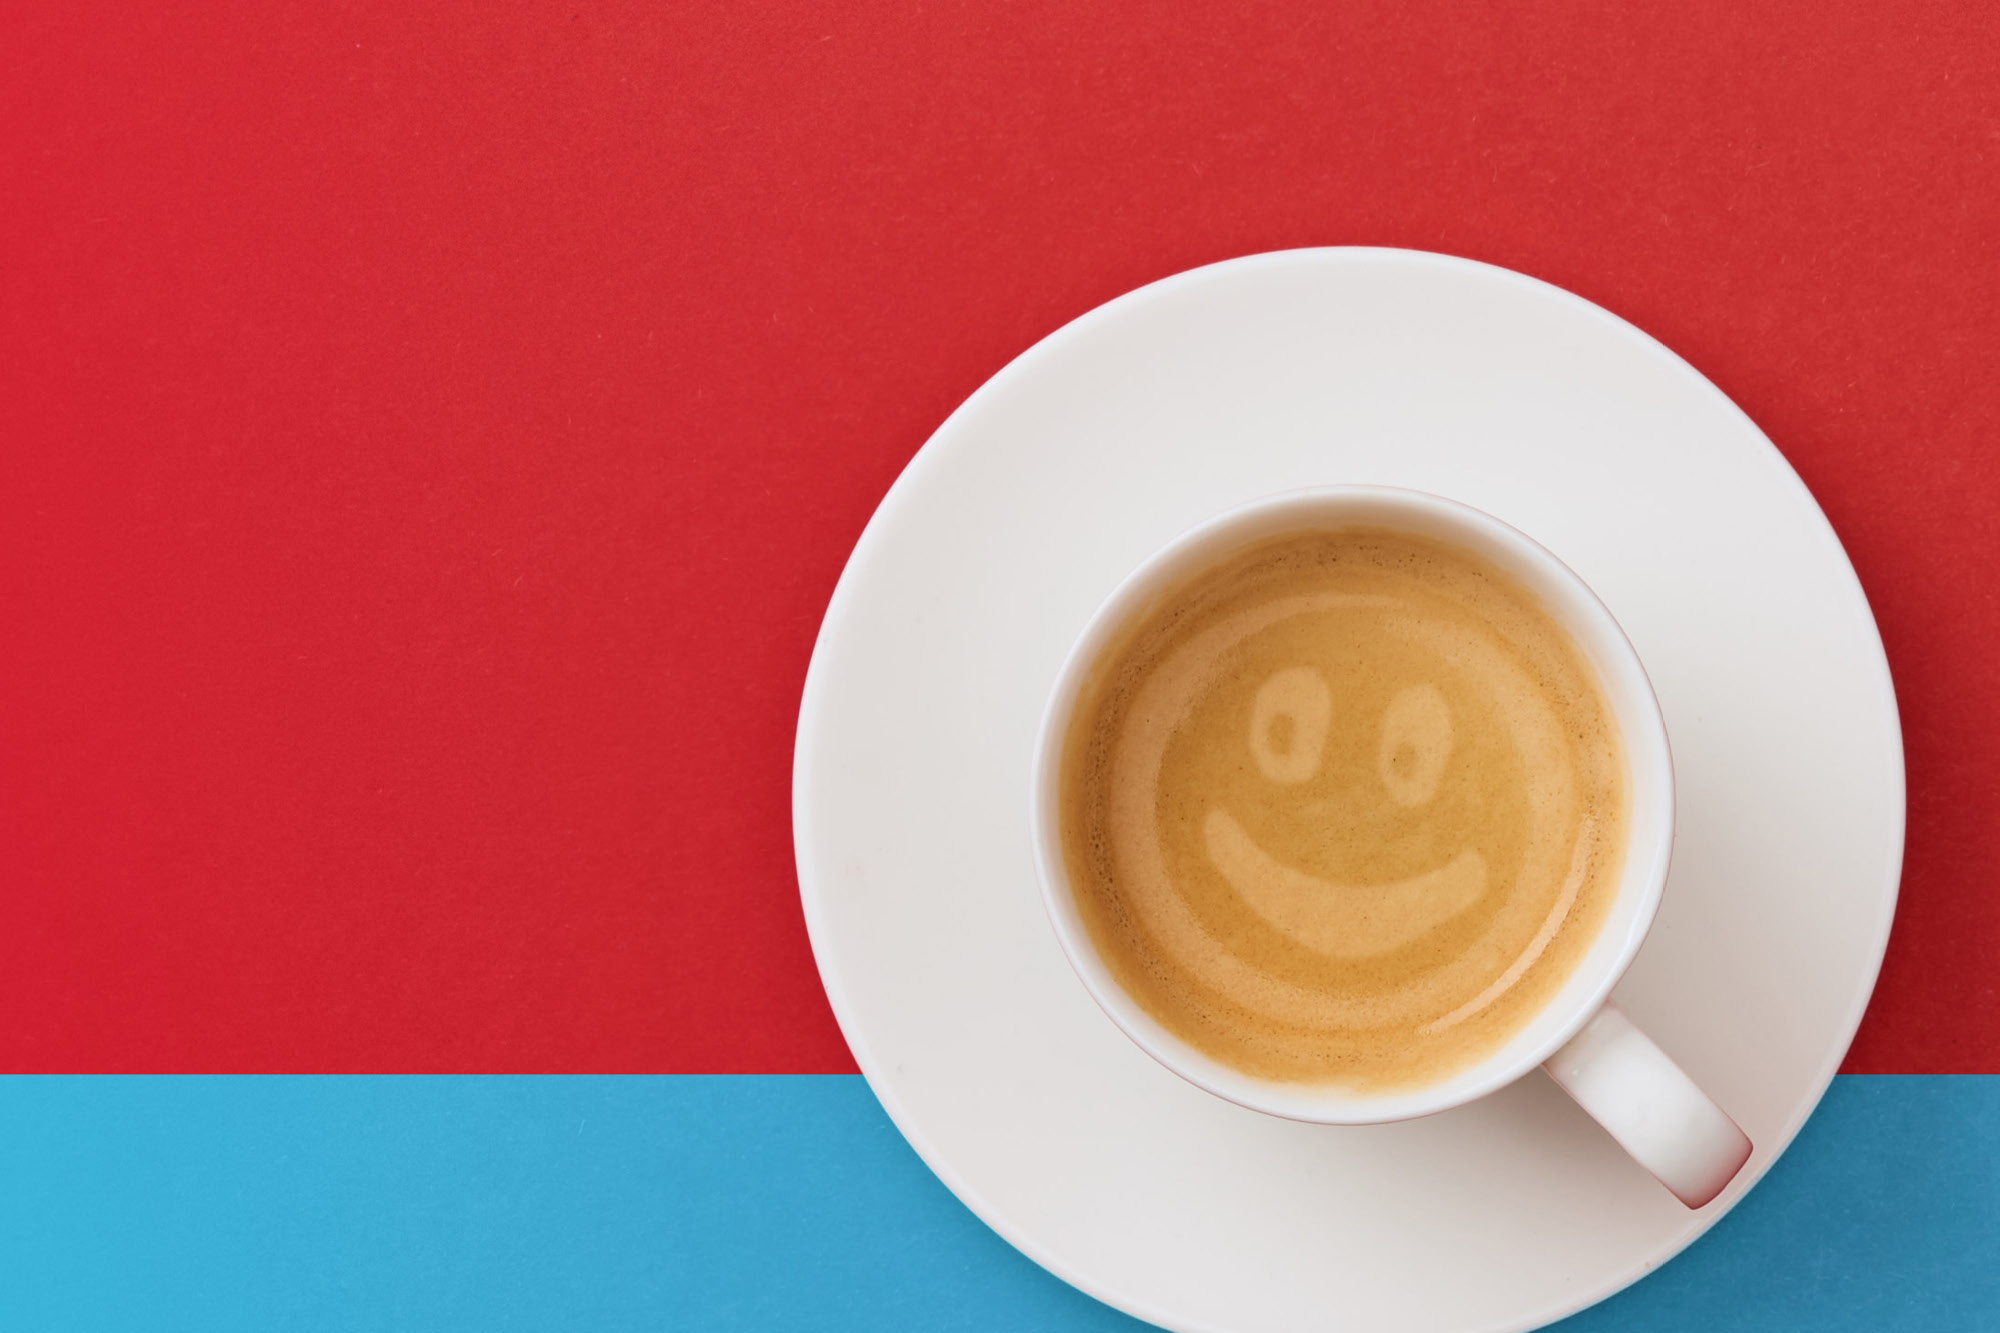 Photo of a white coffee cup that holds a coffee drink with a smiley face in the foam on a red and turquoise background